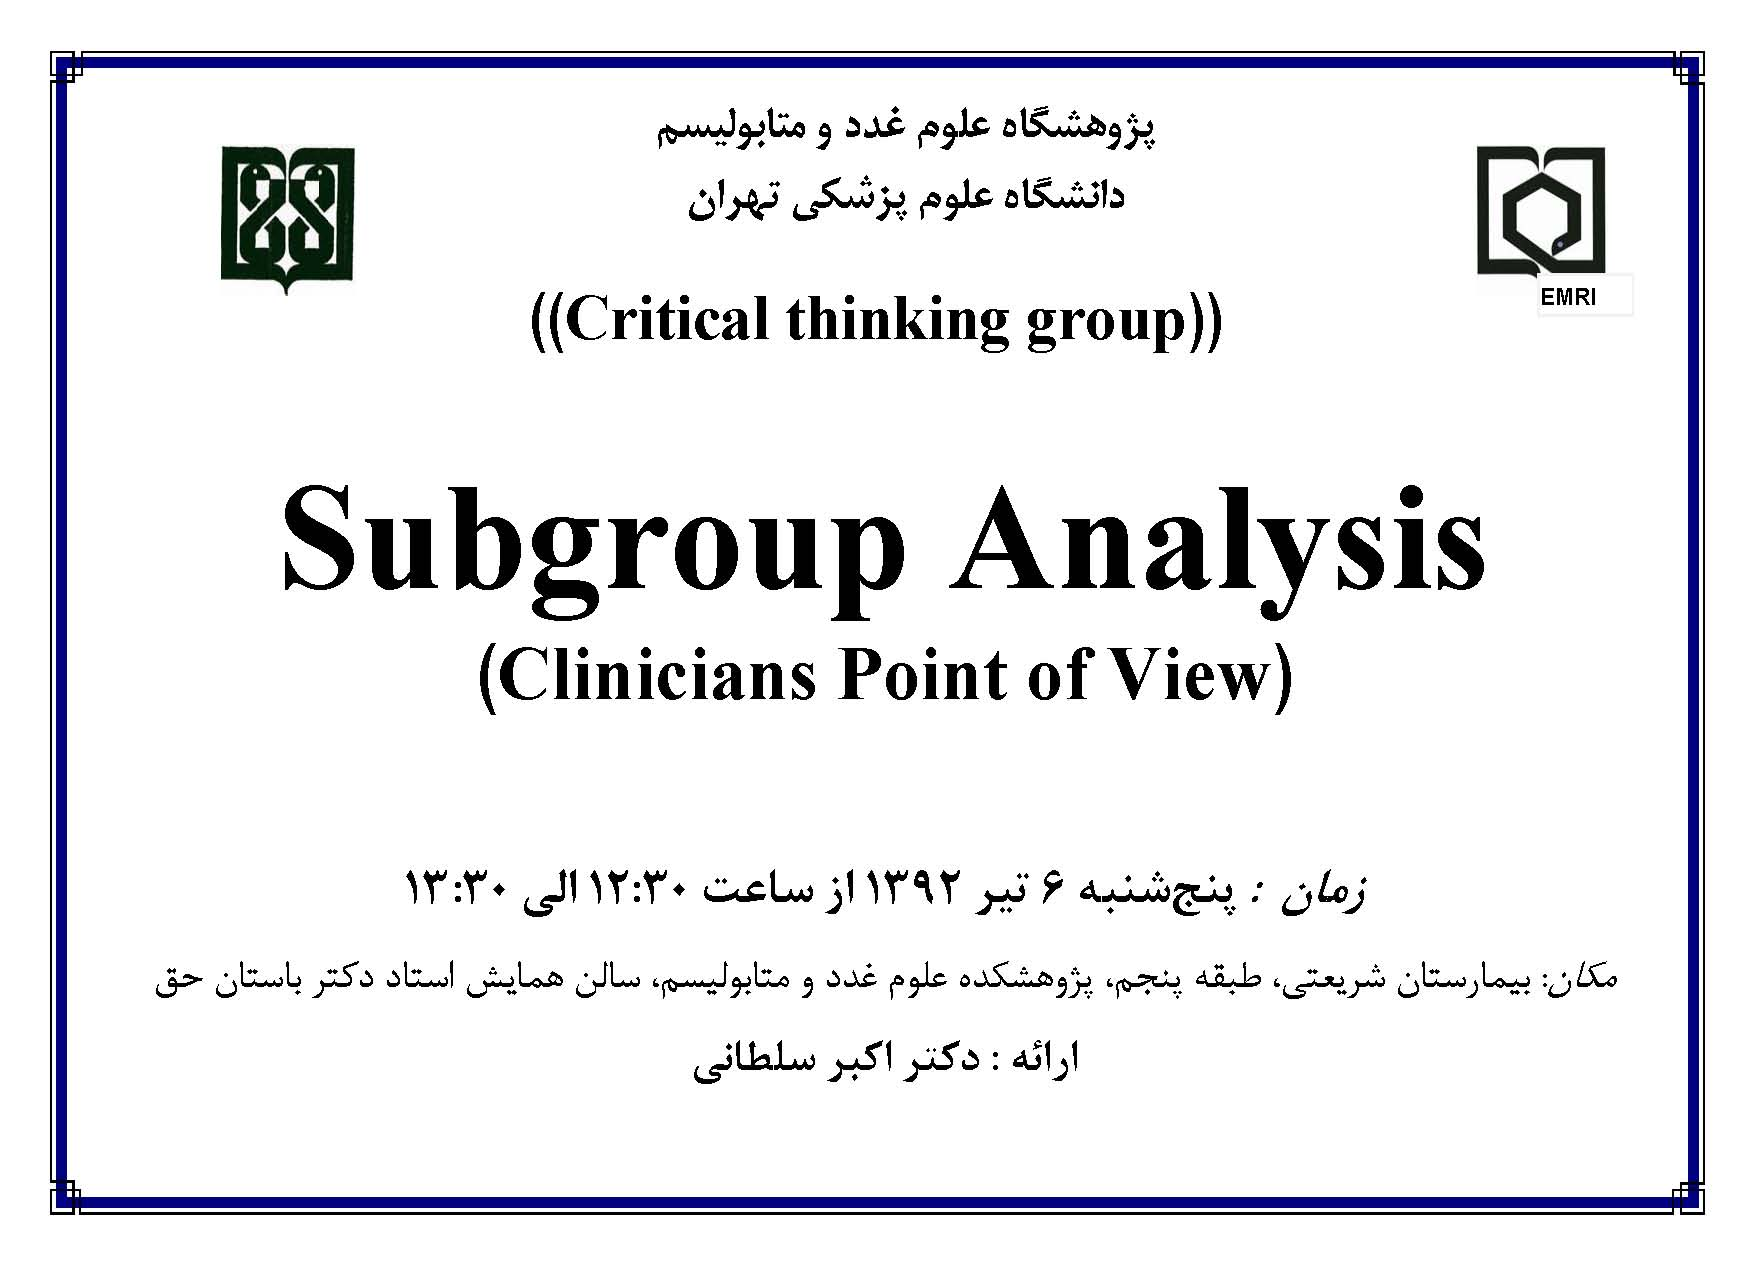 سخنرانی علمی هفتگی: Subgroup Analysis; Clinicians Point of View